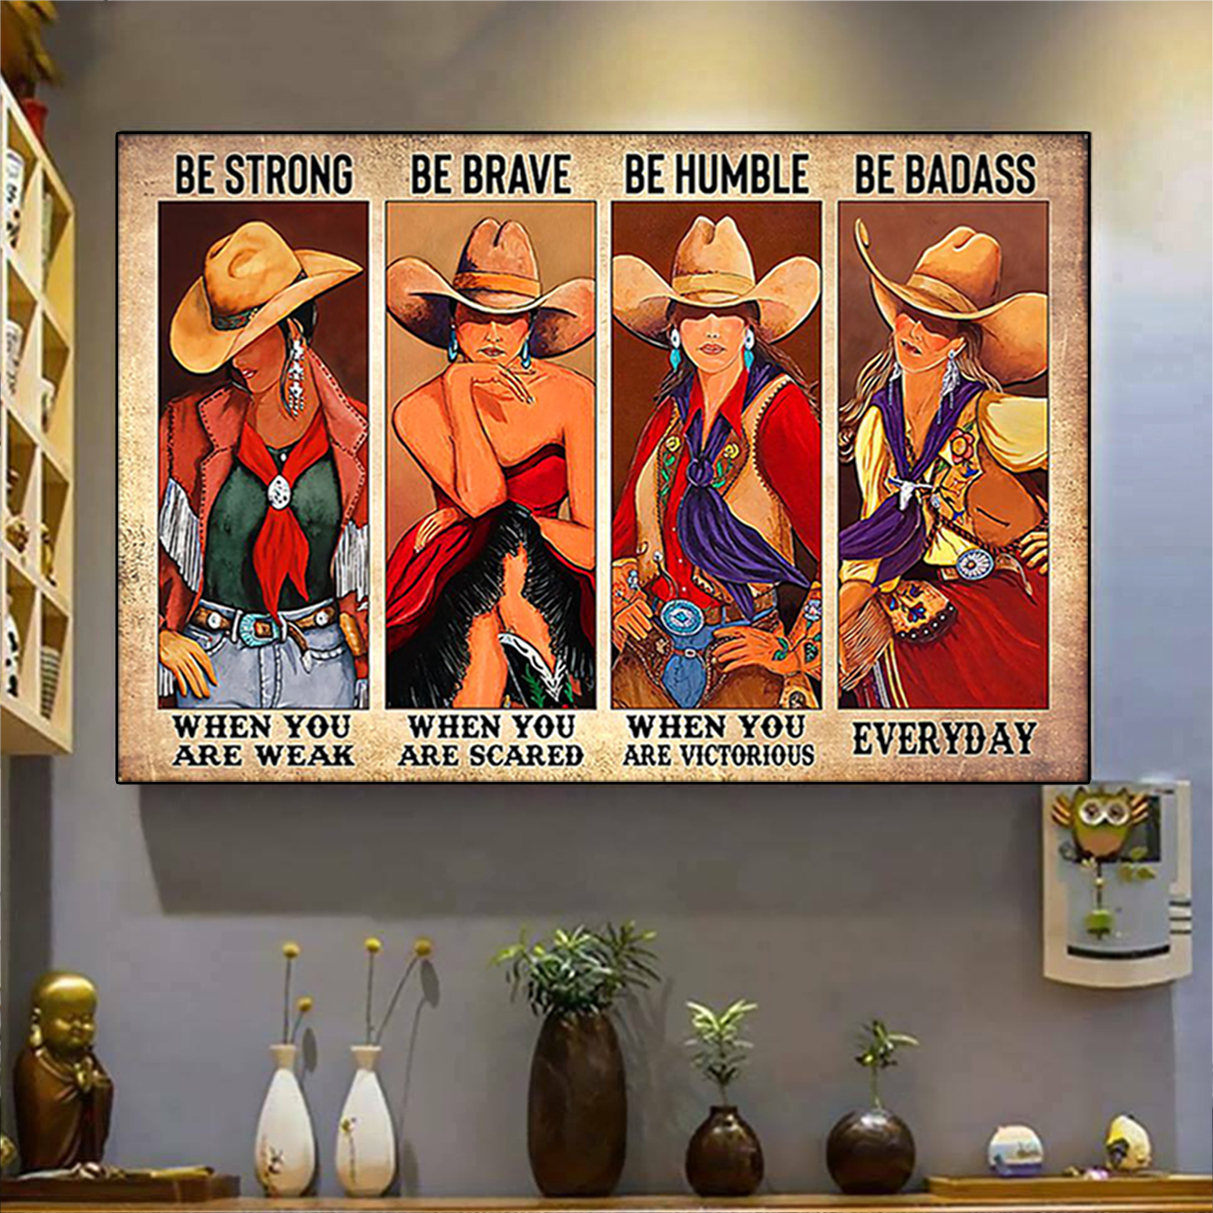 Cowgirl be strong be brave be humble be badass poster A3